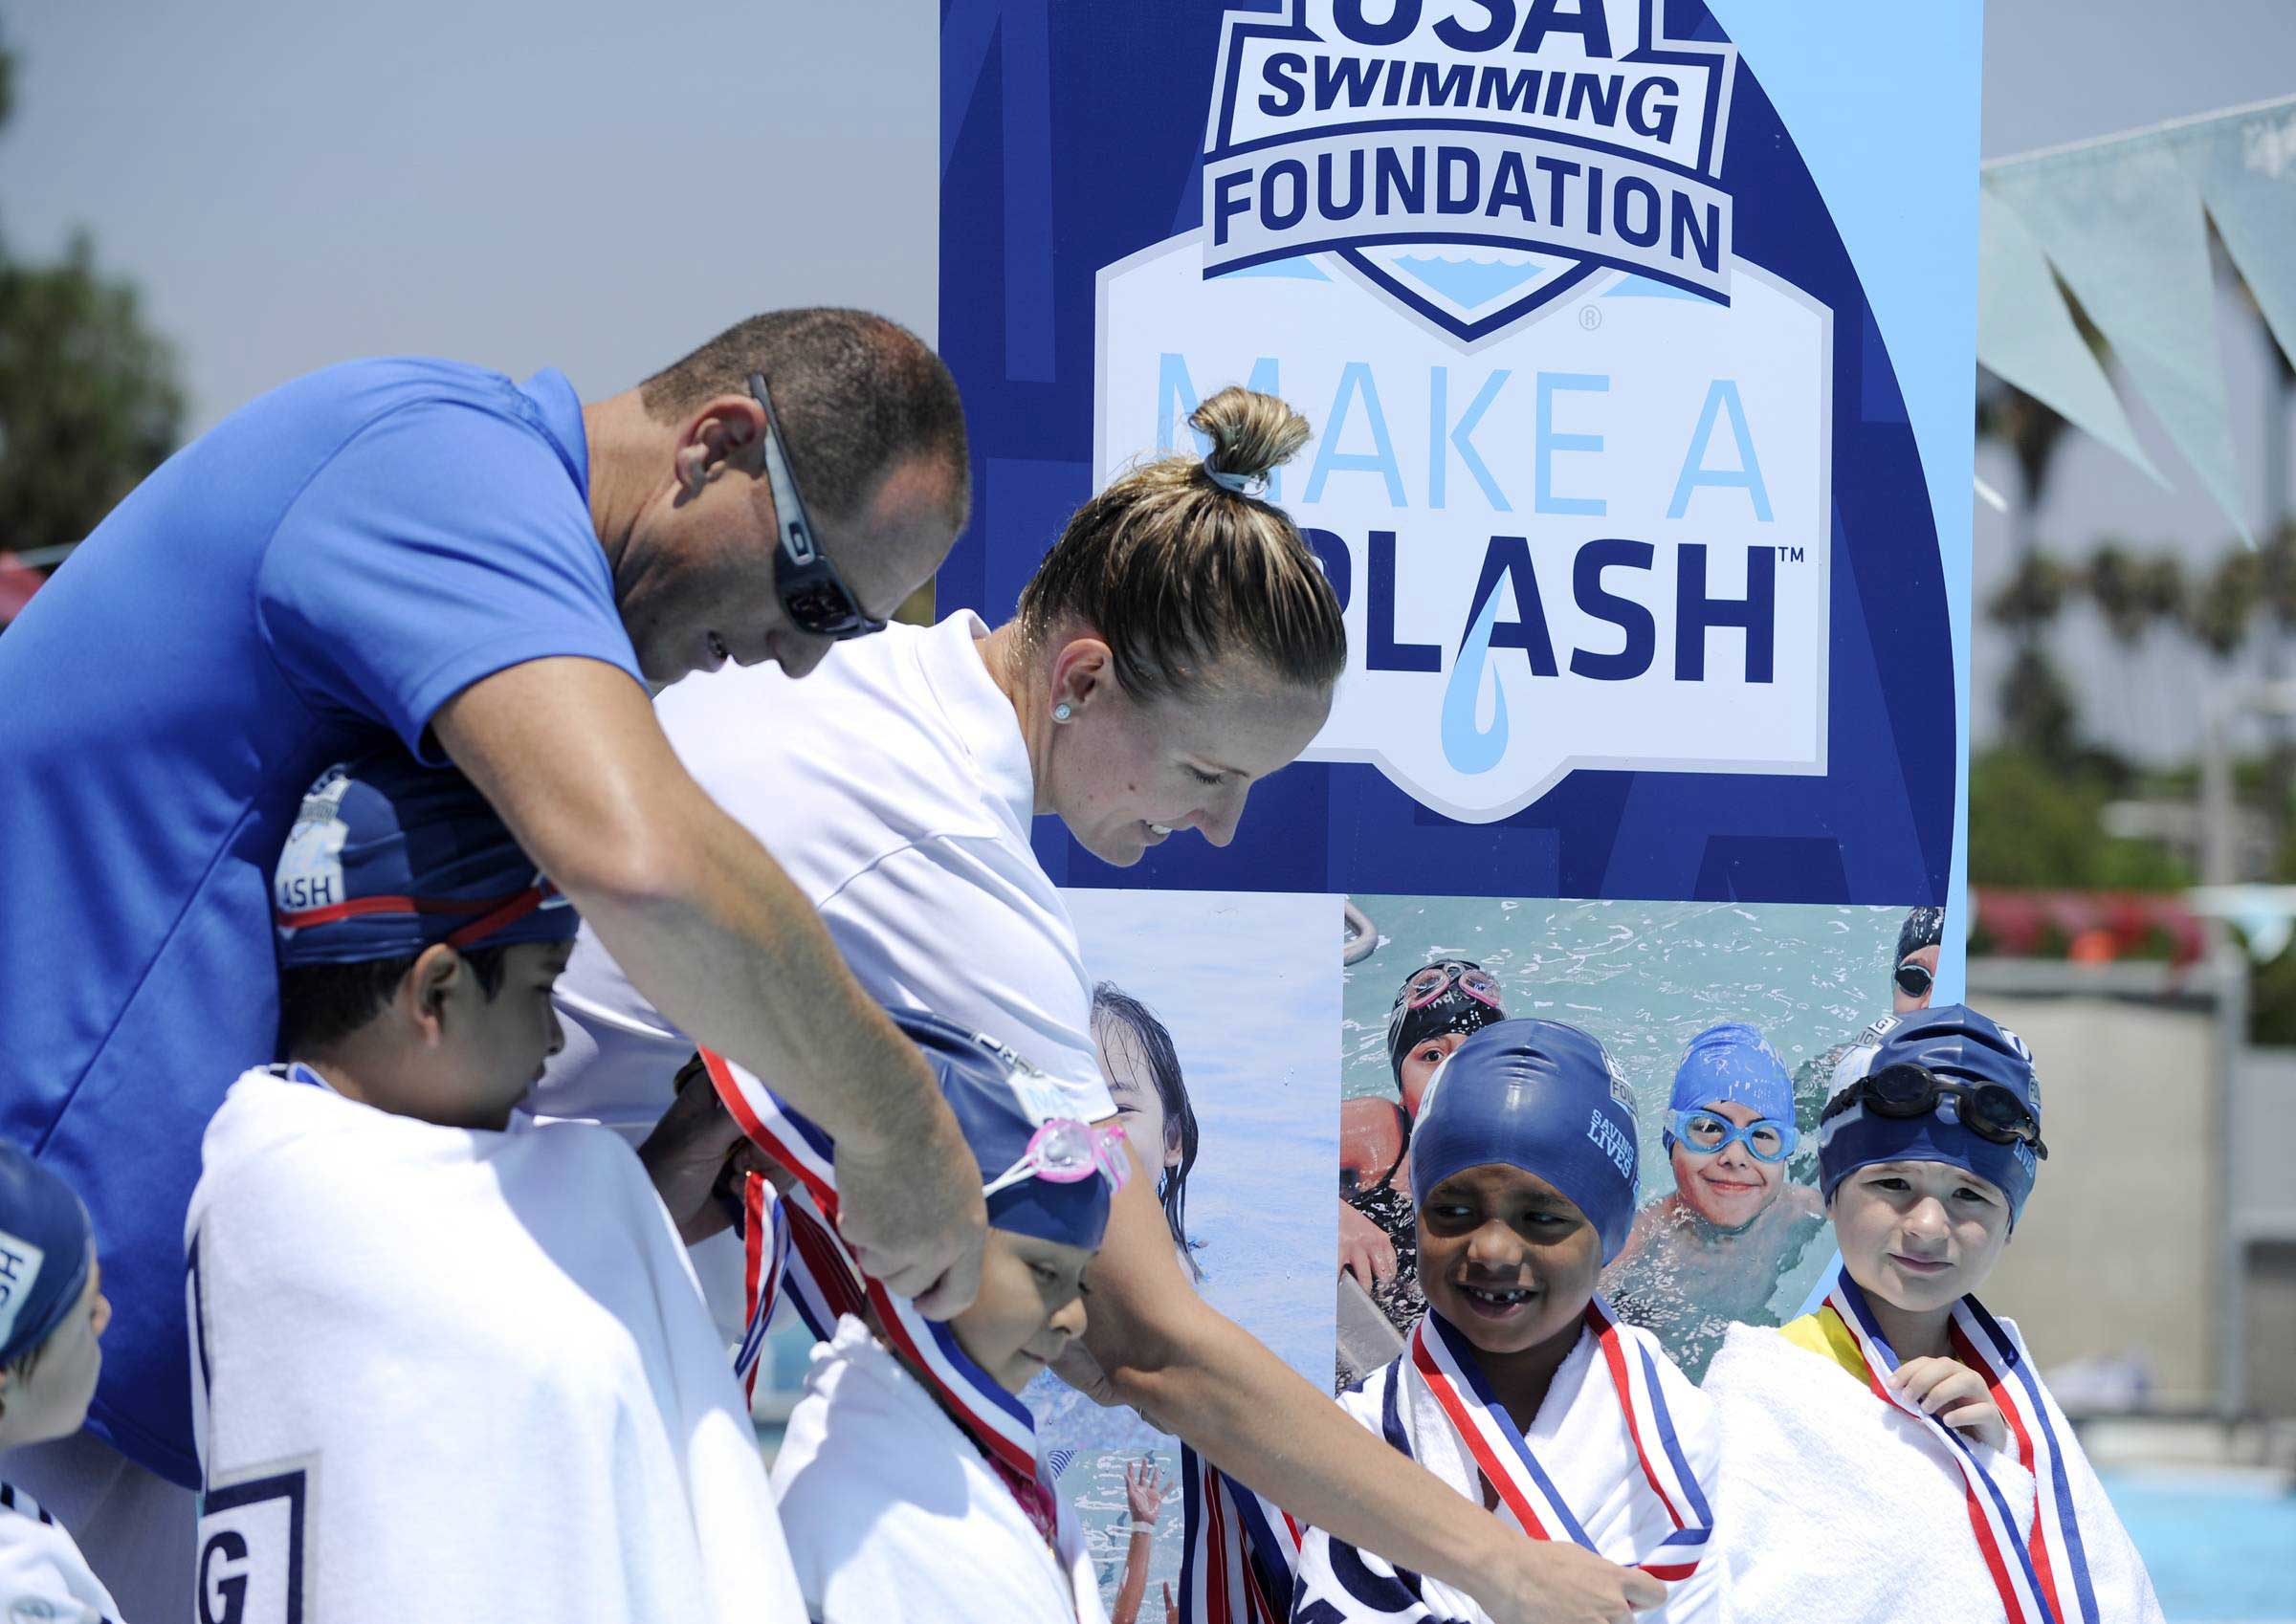 August 2, 2016, Long Beach, CA. Medal presentation with Olympians Ambassadors Jessica Hardy and Jason Lezak at USA Swimming Foundation's first-ever Make a Splash Games.